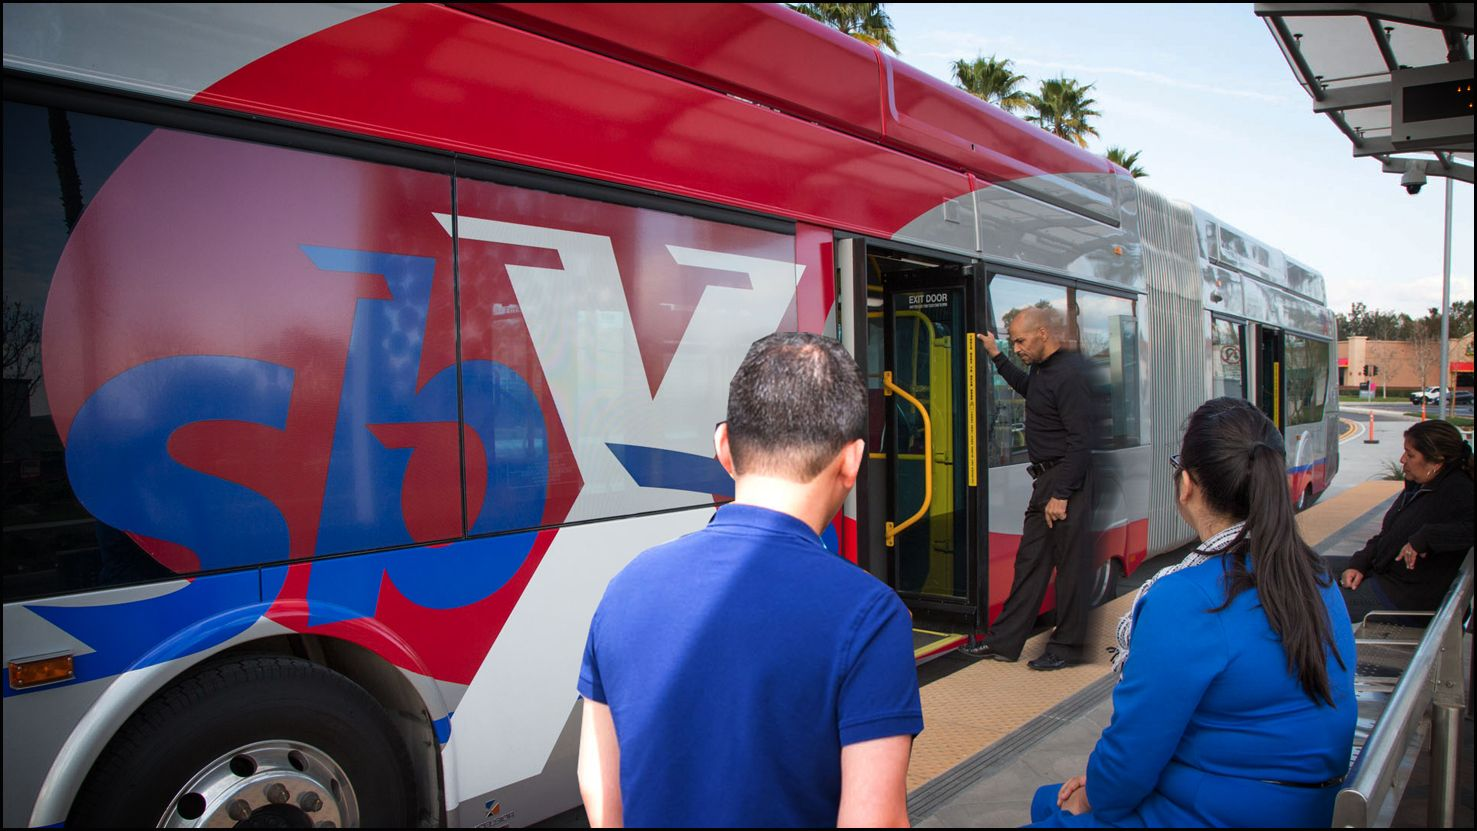 Friends ride free Fridays on sbX rapid transit line